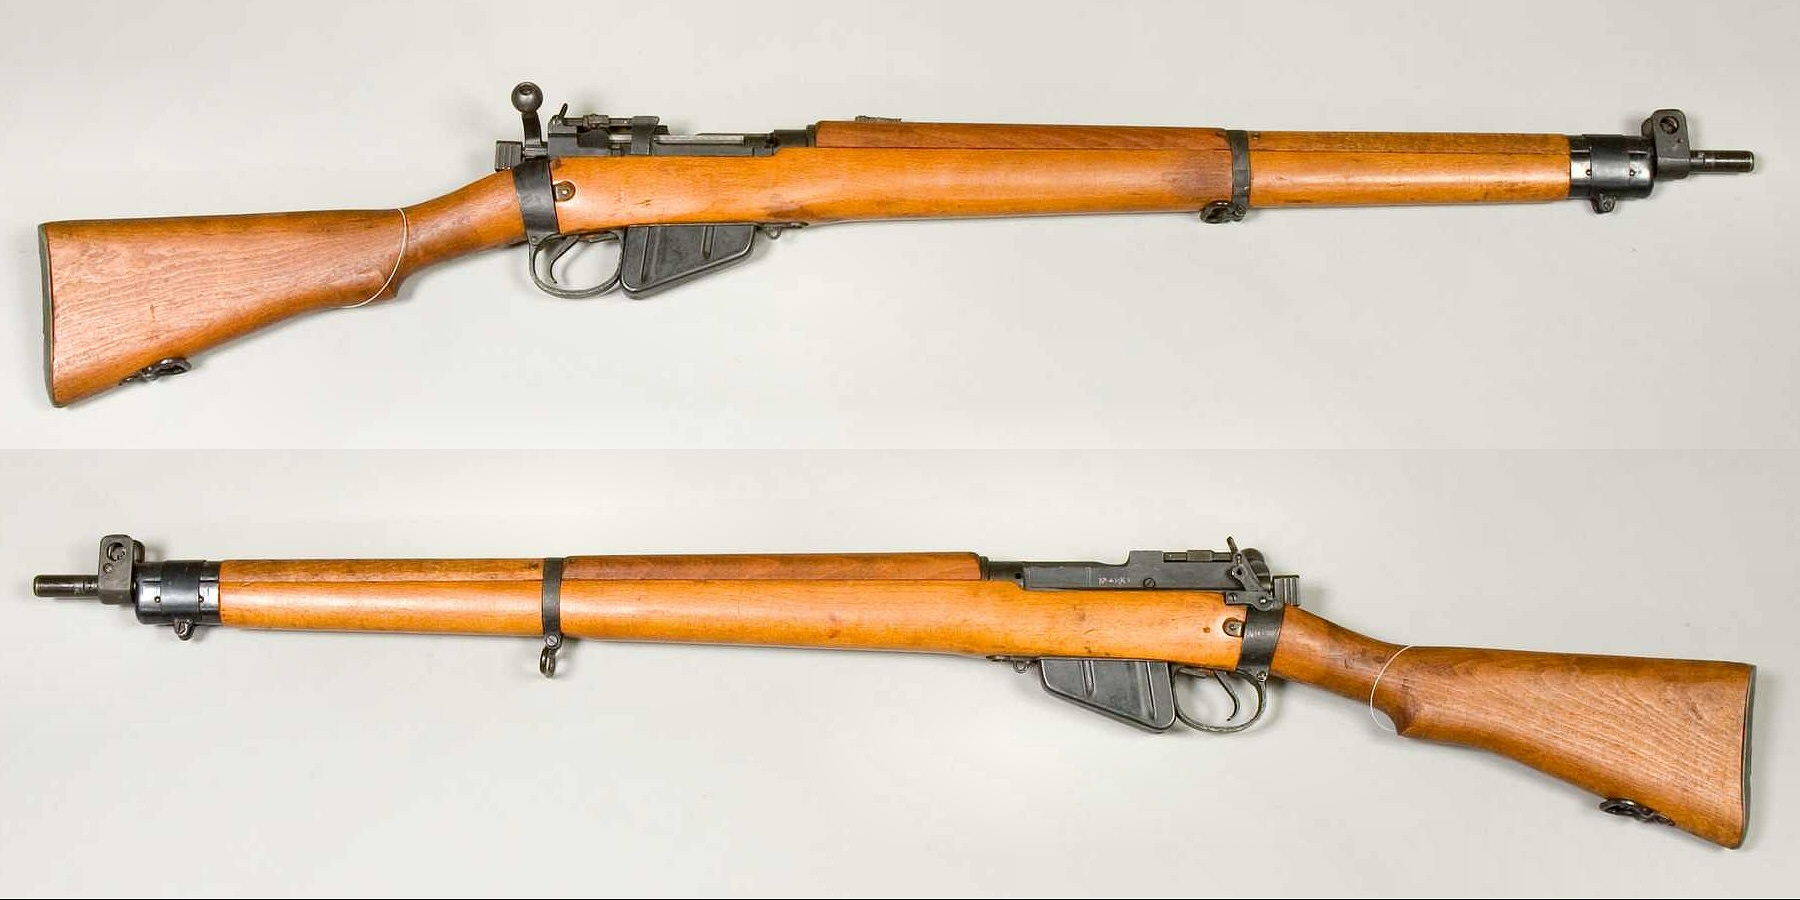 The Canadian Rangers will start to phase out the Lee-Enfield No. 4 Mk I this summer.